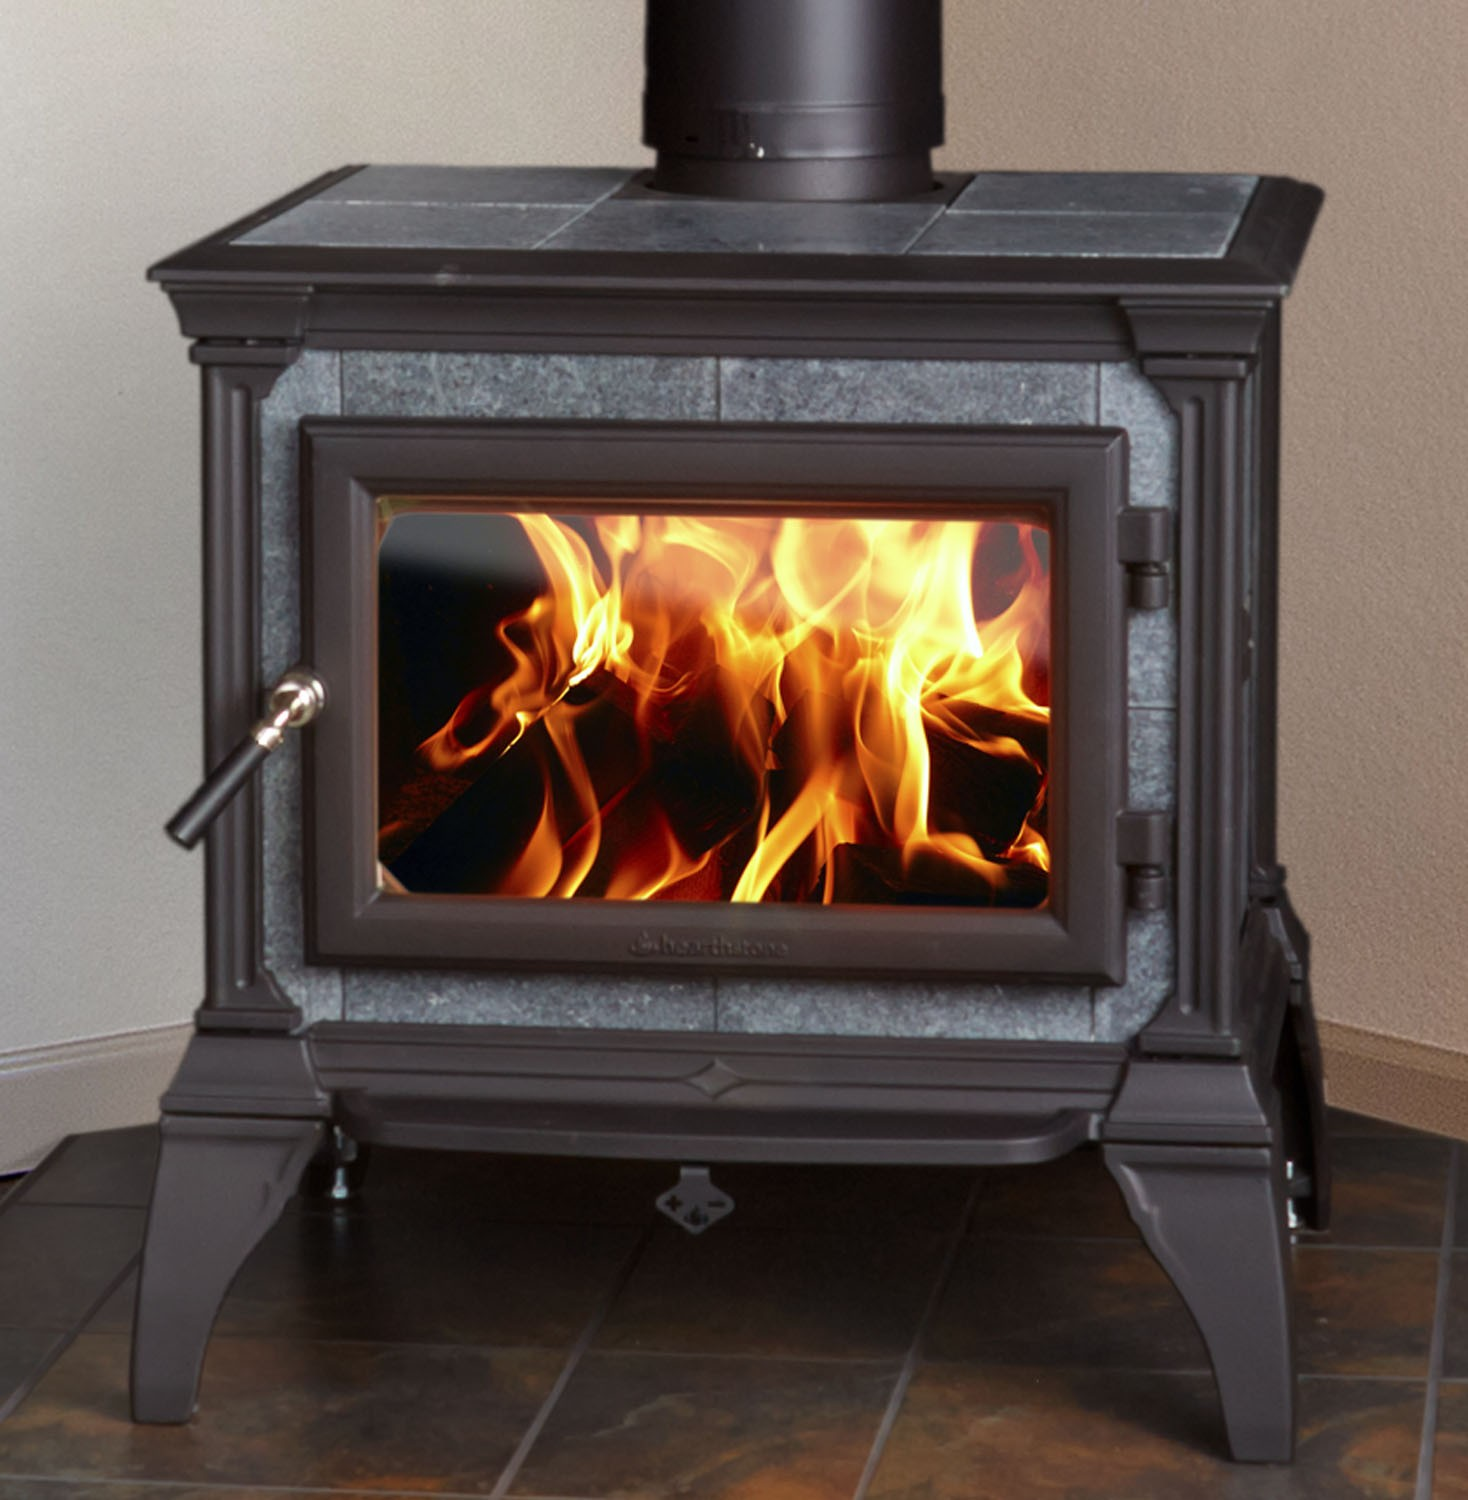 Cozy Cabin Stove Amp Fireplace Shop Freestanding Wood Stoves